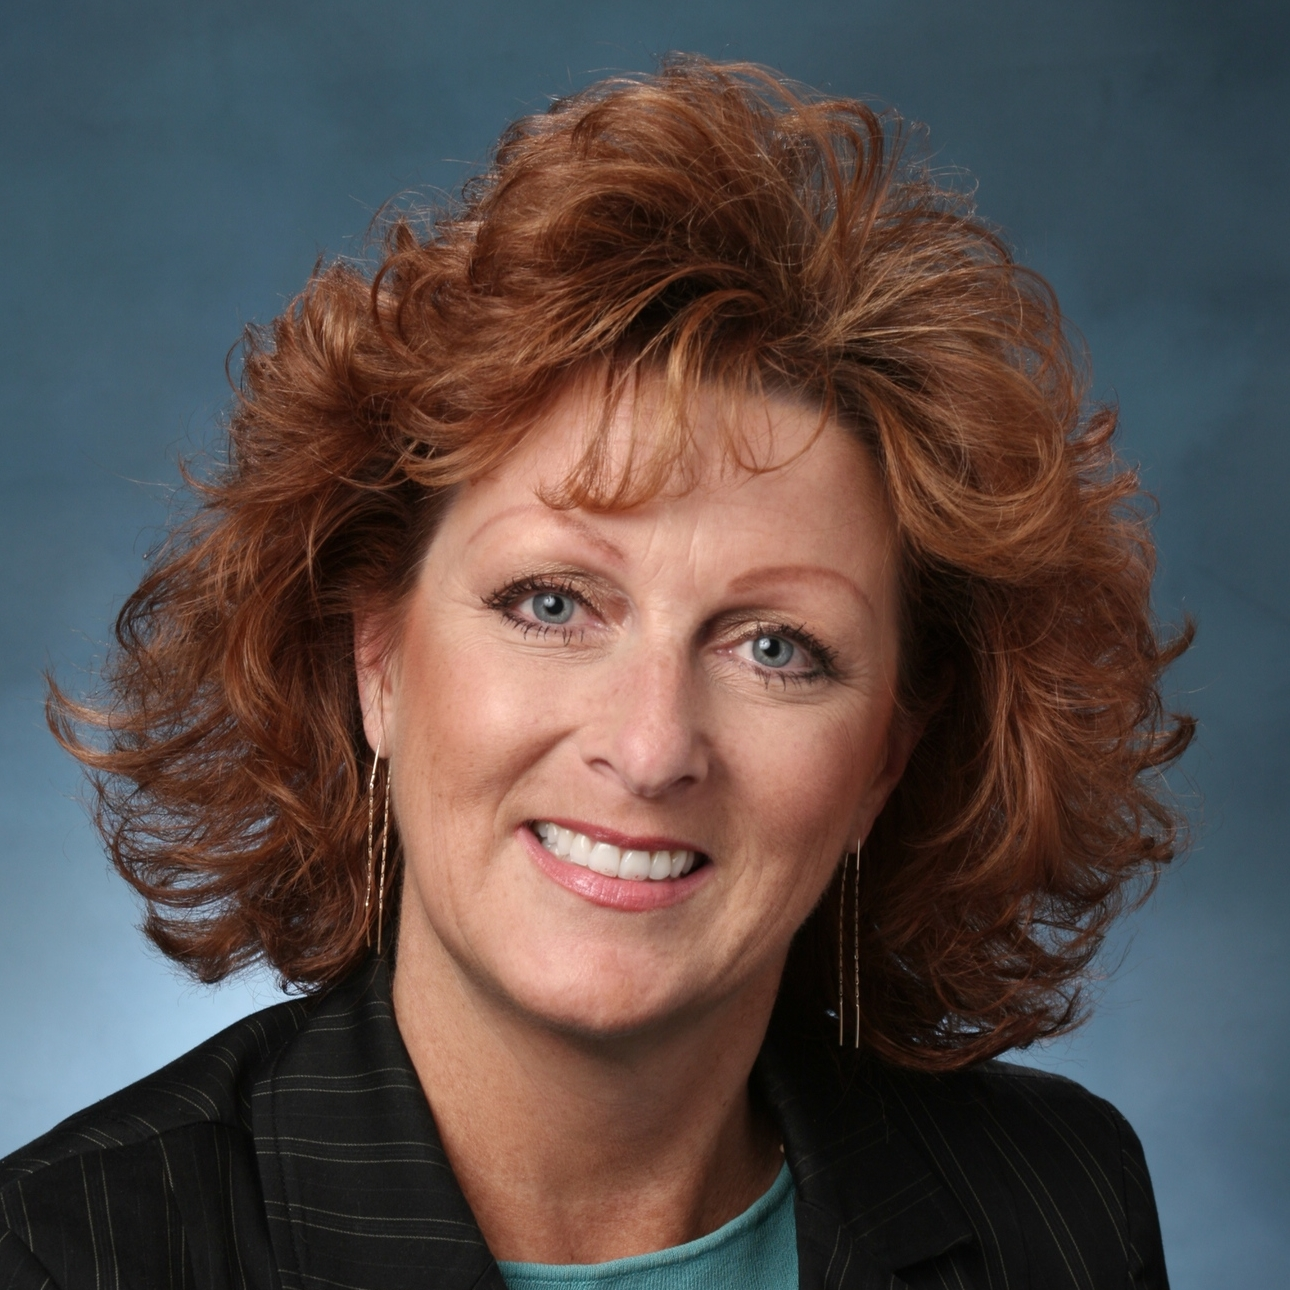 Brigette Loden   S. Brigette Loden has nearly 20 years experience in healthcare nor-for-profit leadership, strategic planning and philanthropy.